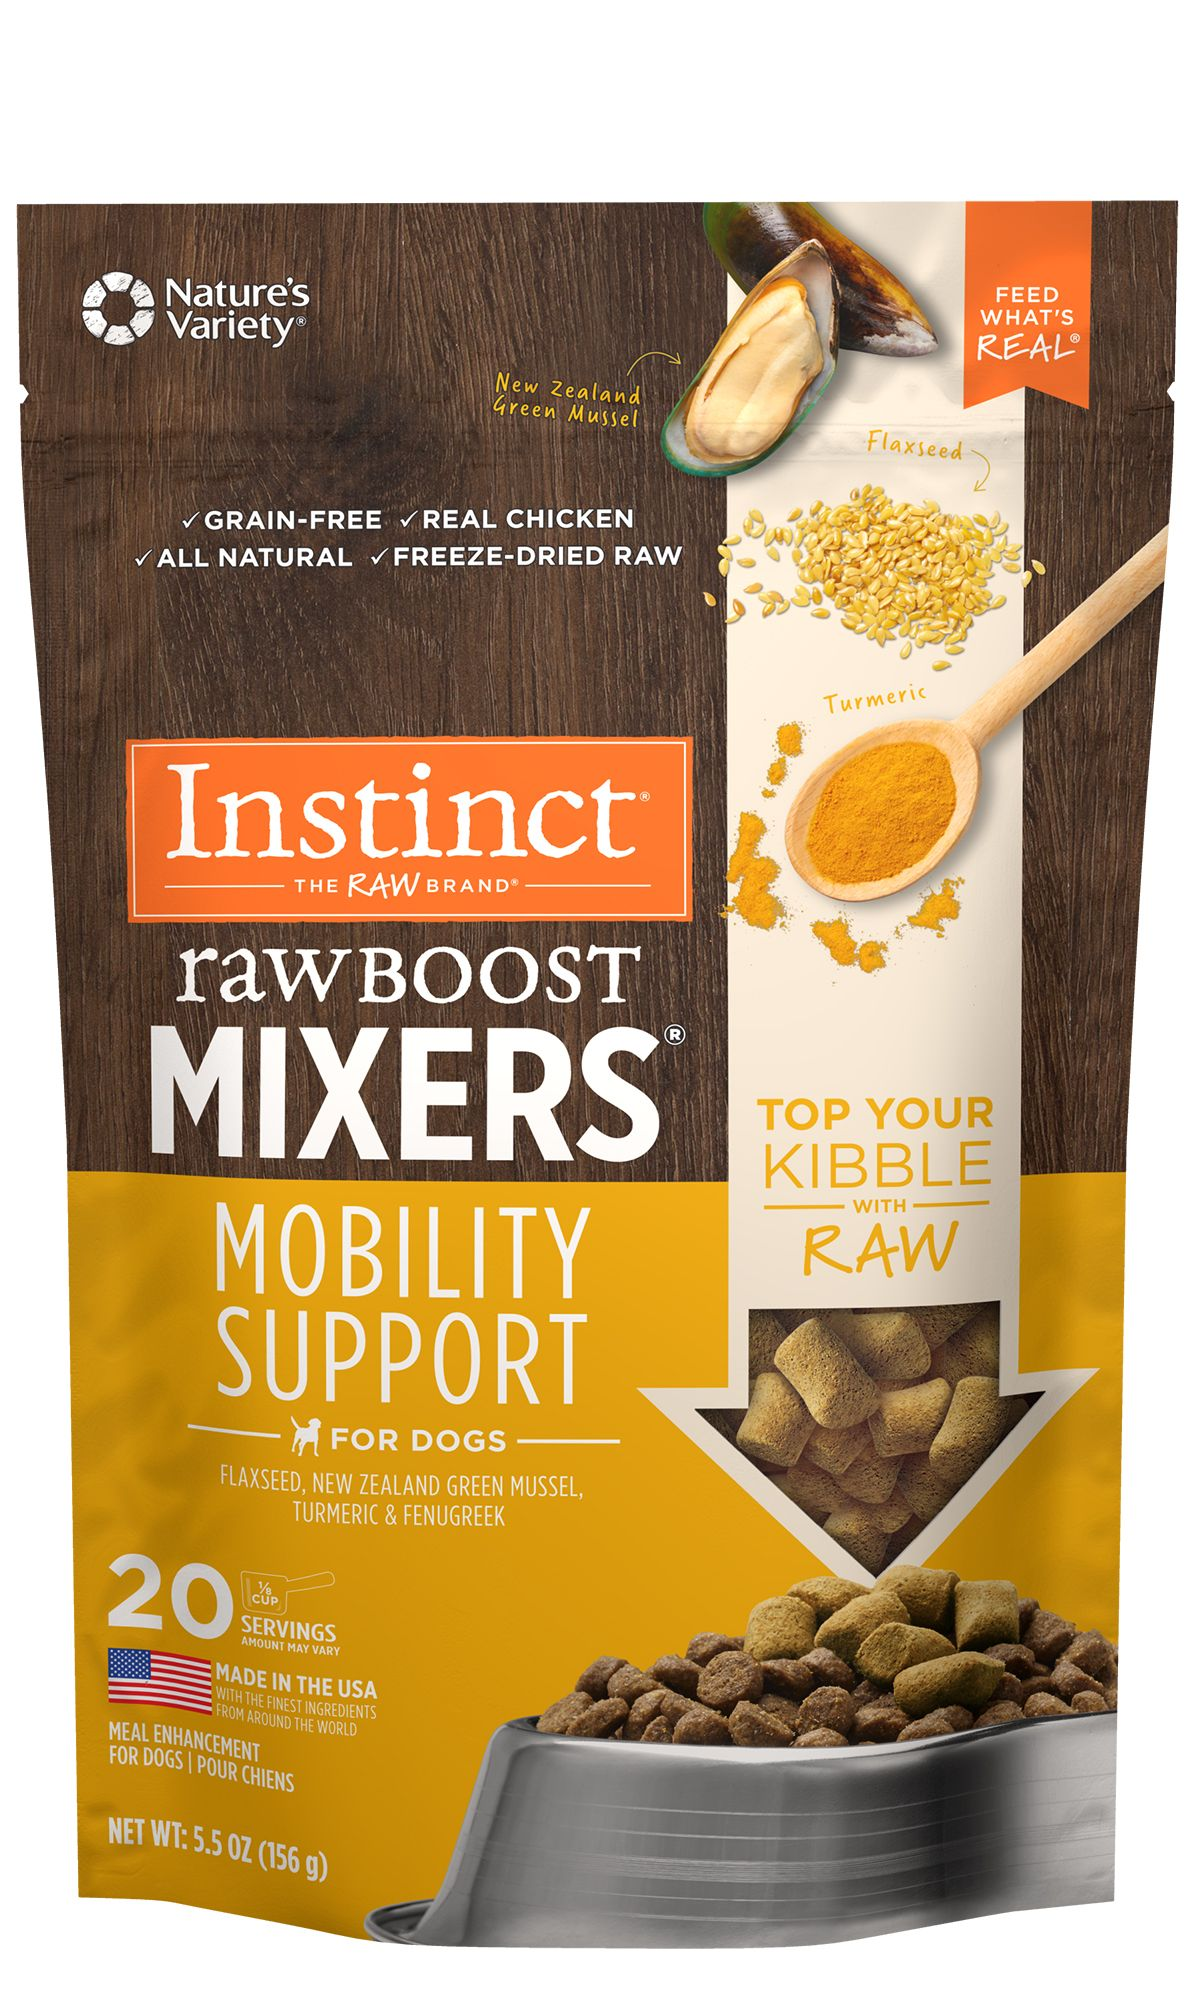 Raw Boost Mixers - Mobility Support